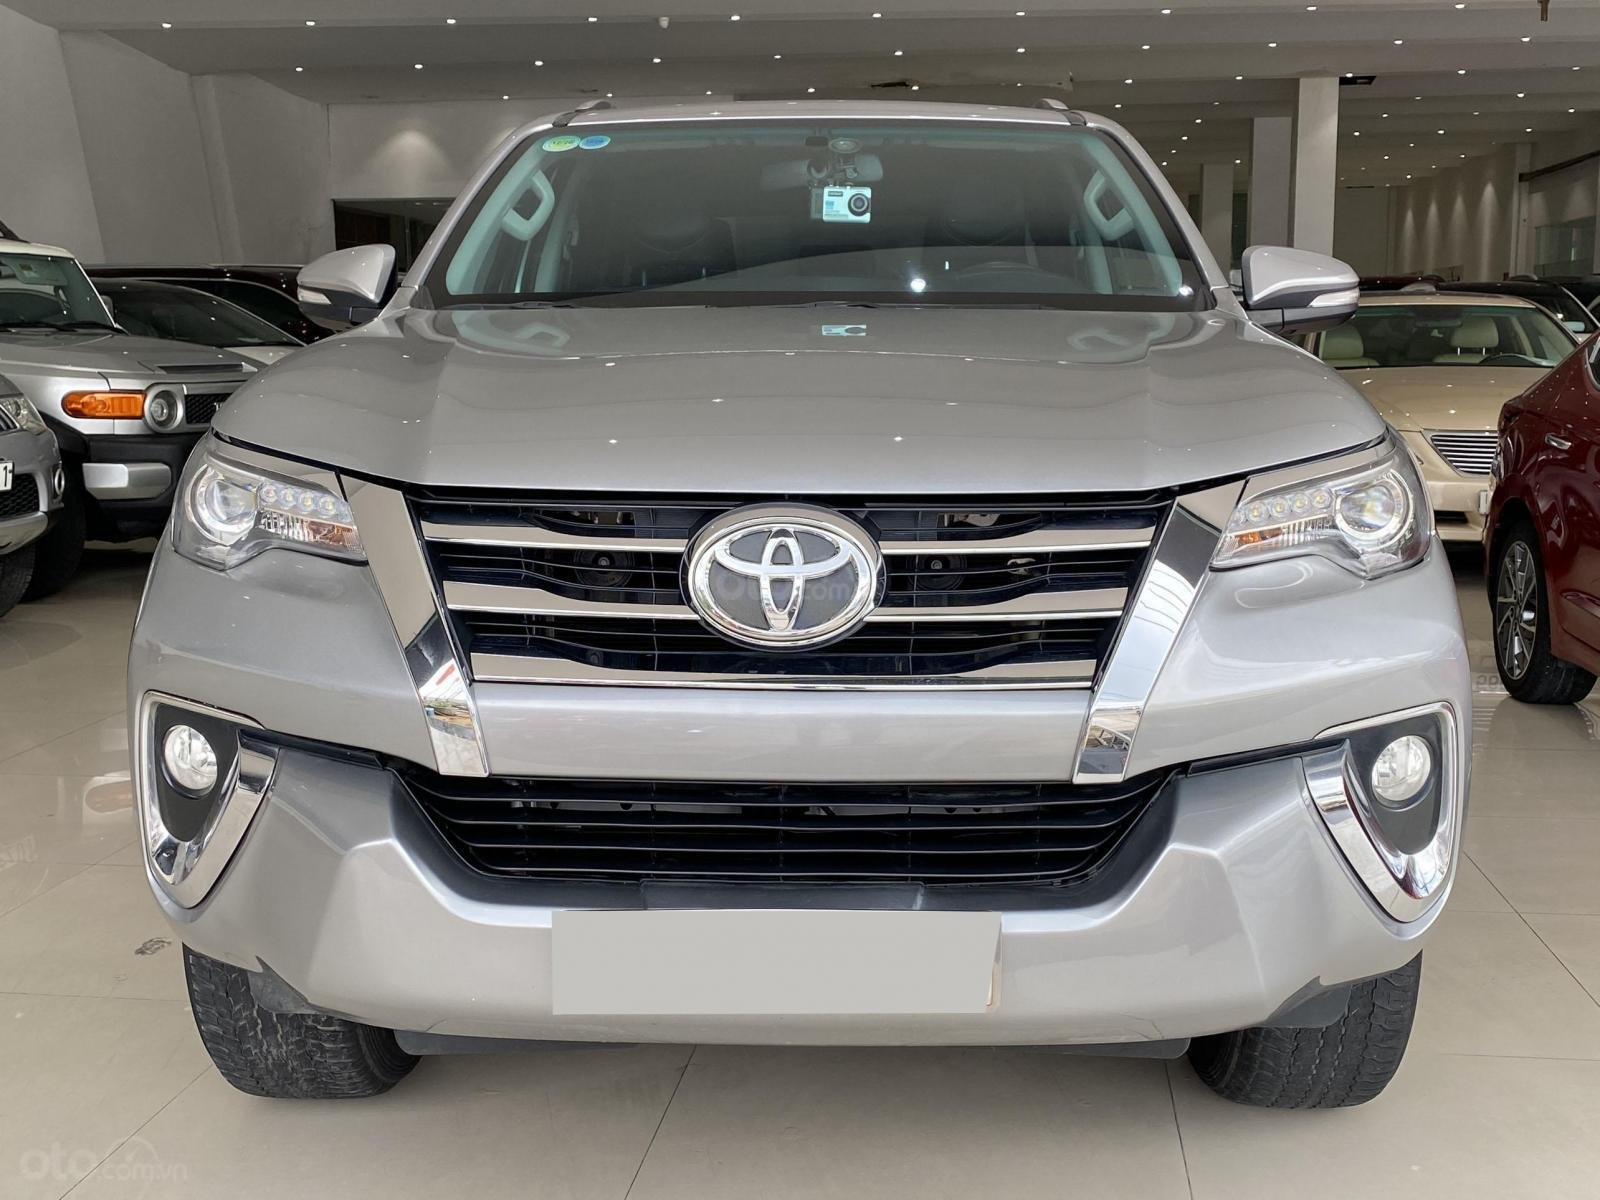 Bán xe Toyota Fortuner AT 2.7 2017 Full xăng 2 cầu (1)